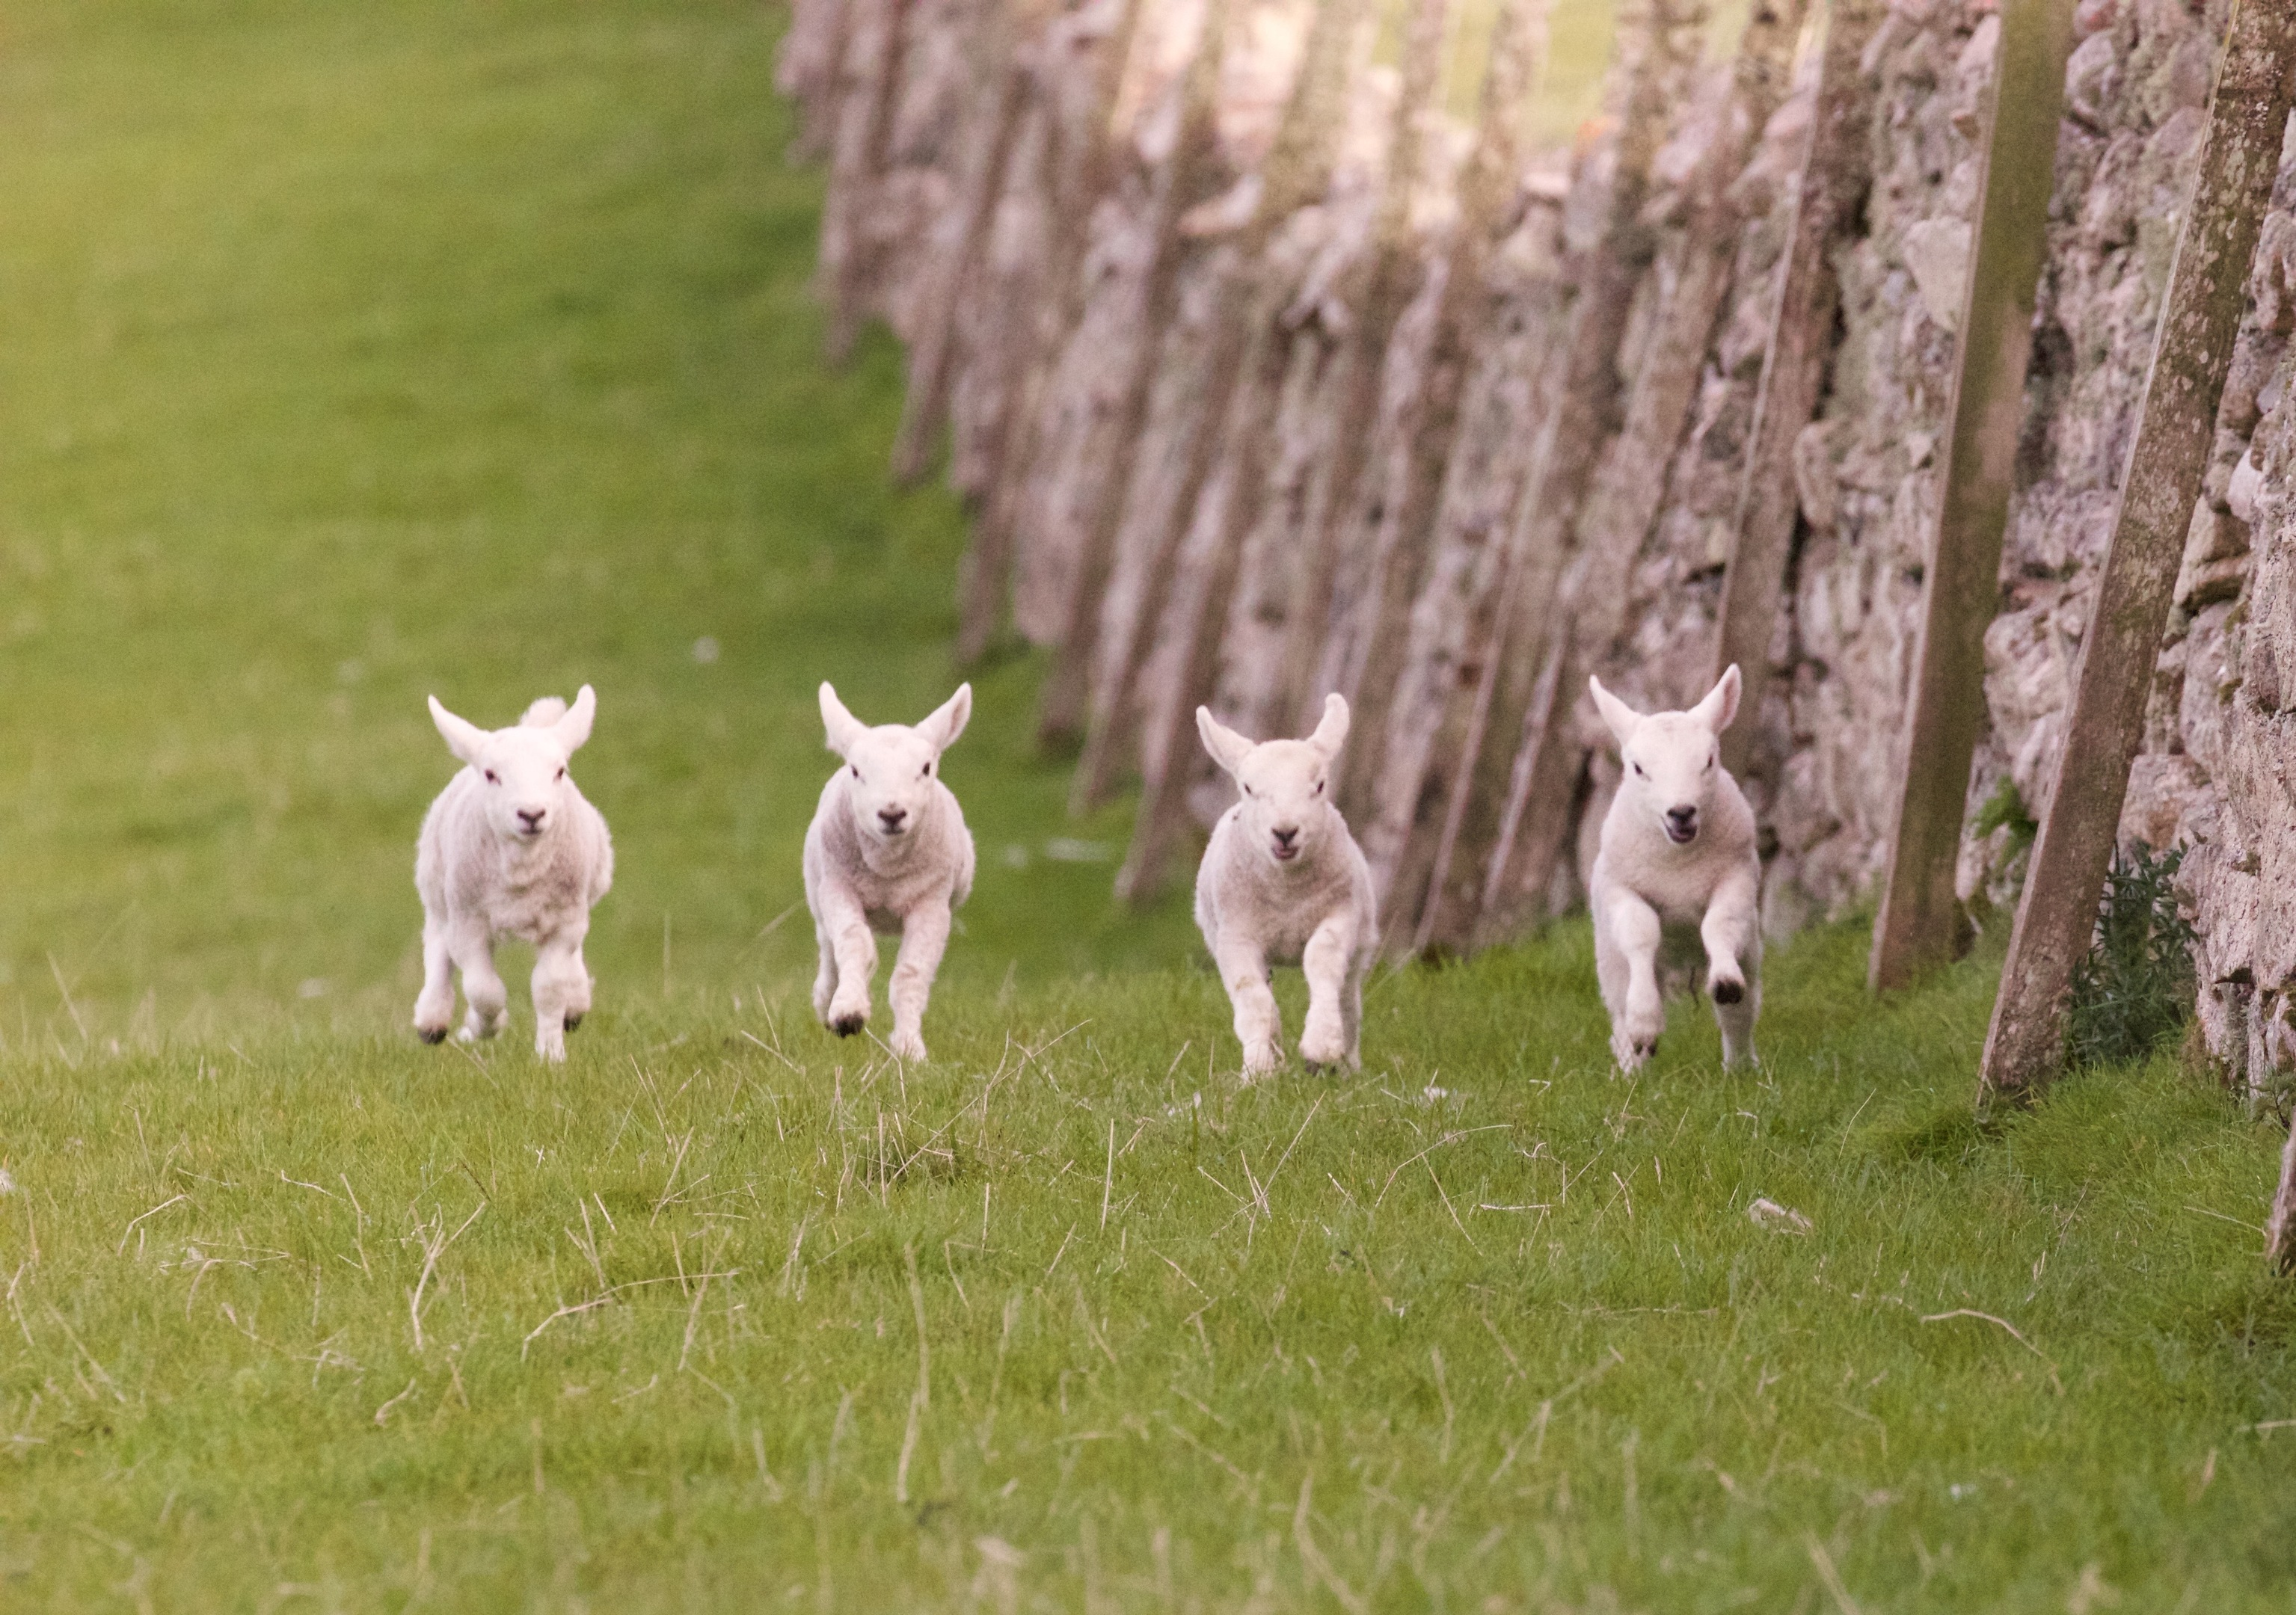 Watching lambs at play is one of the most rewarding aspects of farming